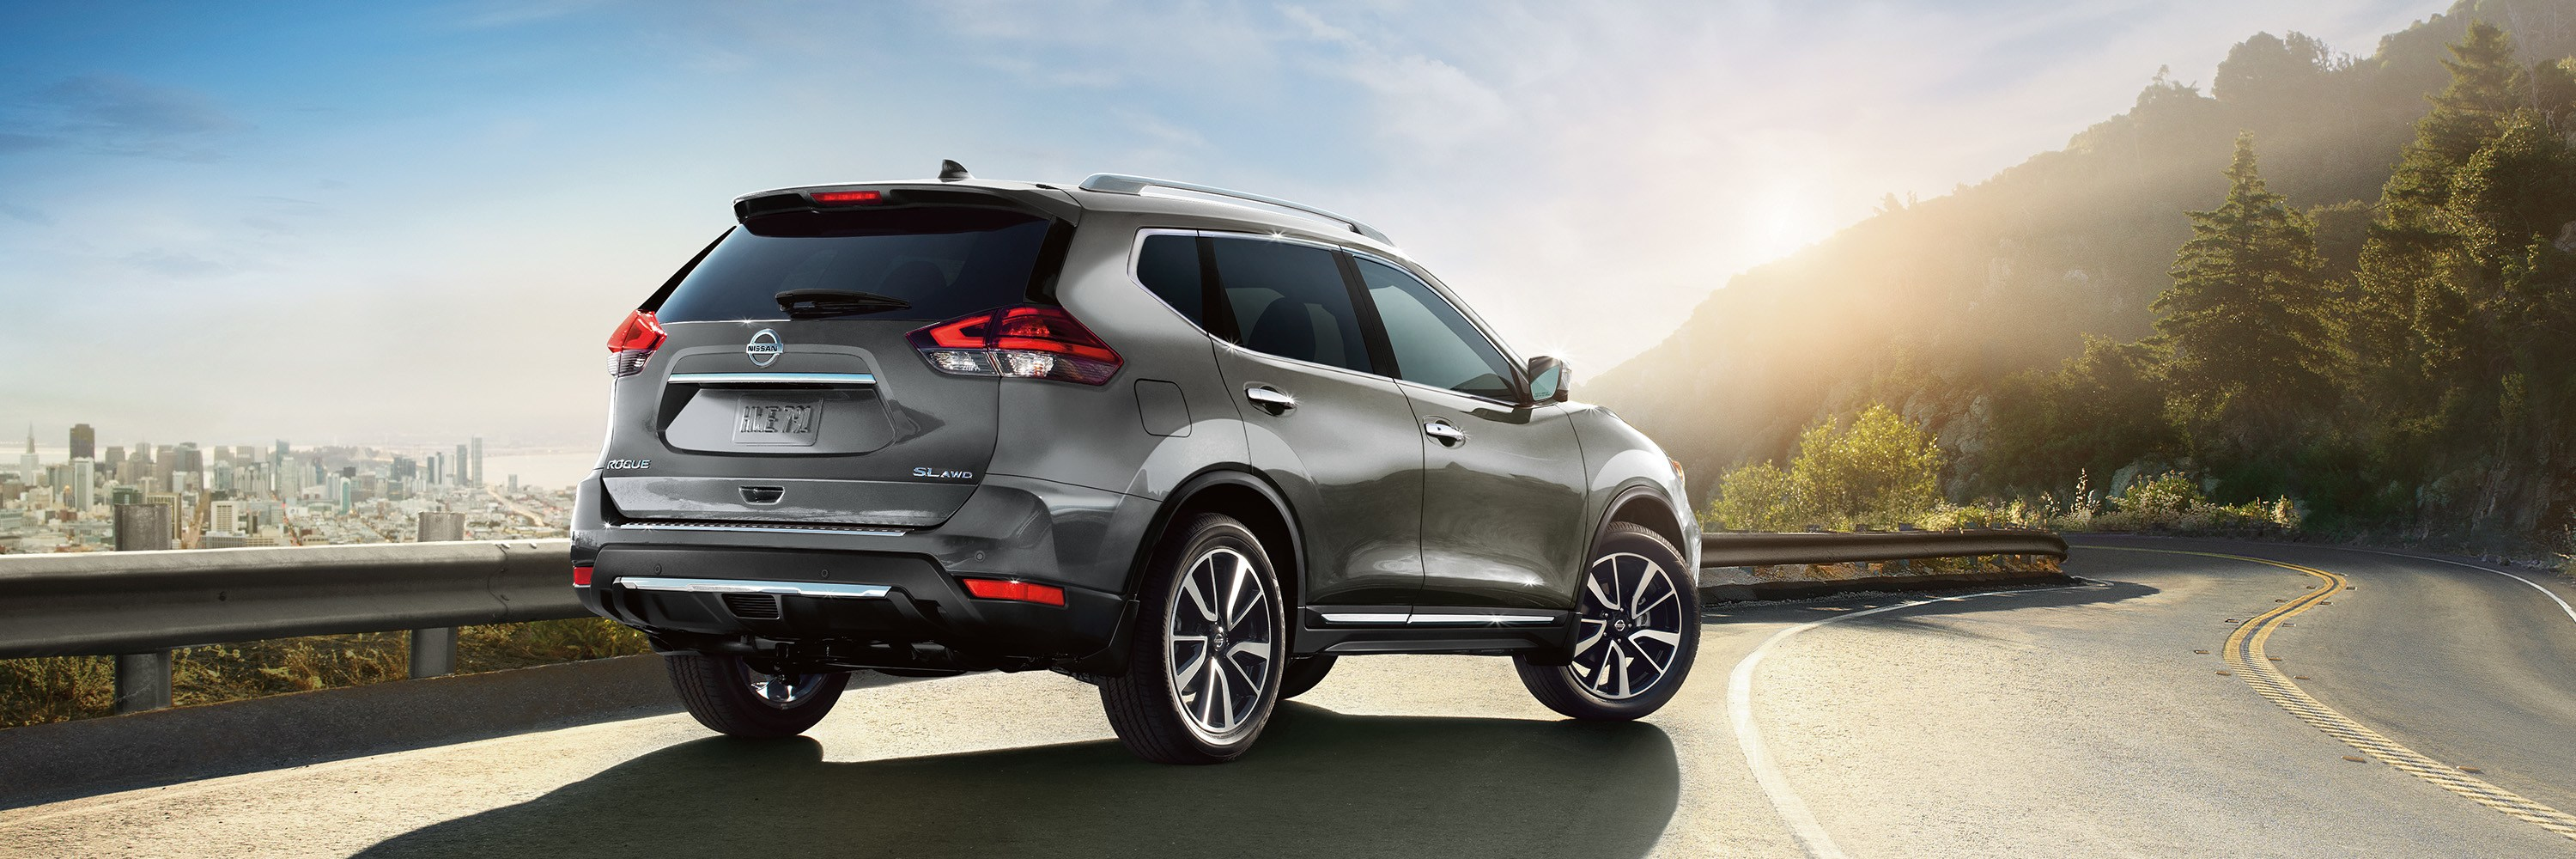 2019 Nissan Rogue for Sale near Hicksville, NY